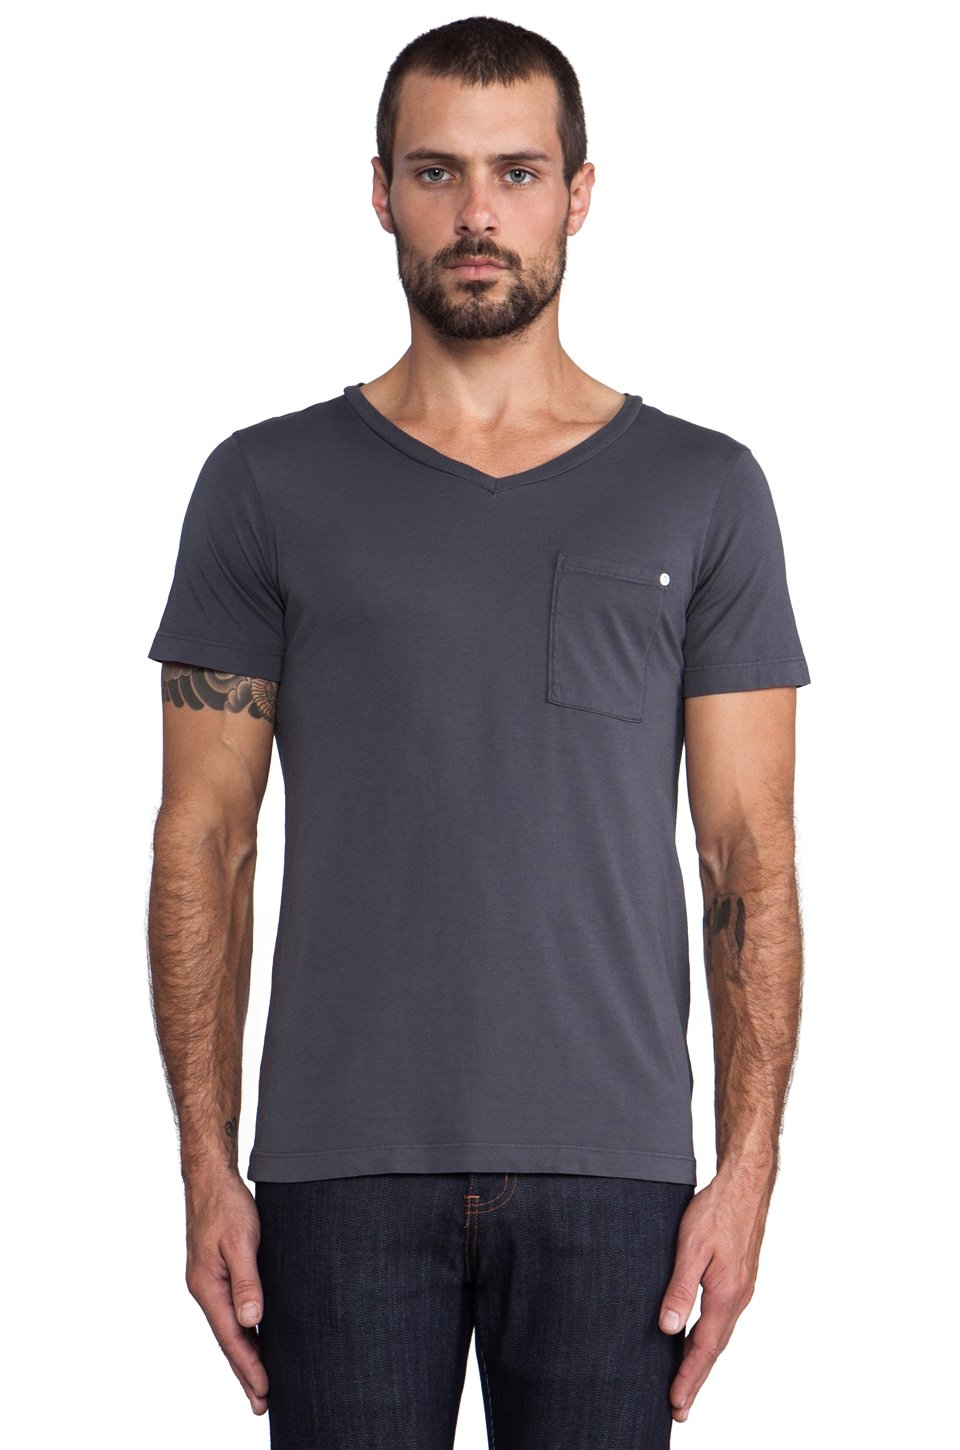 baldwin The V Tee in Charcoal